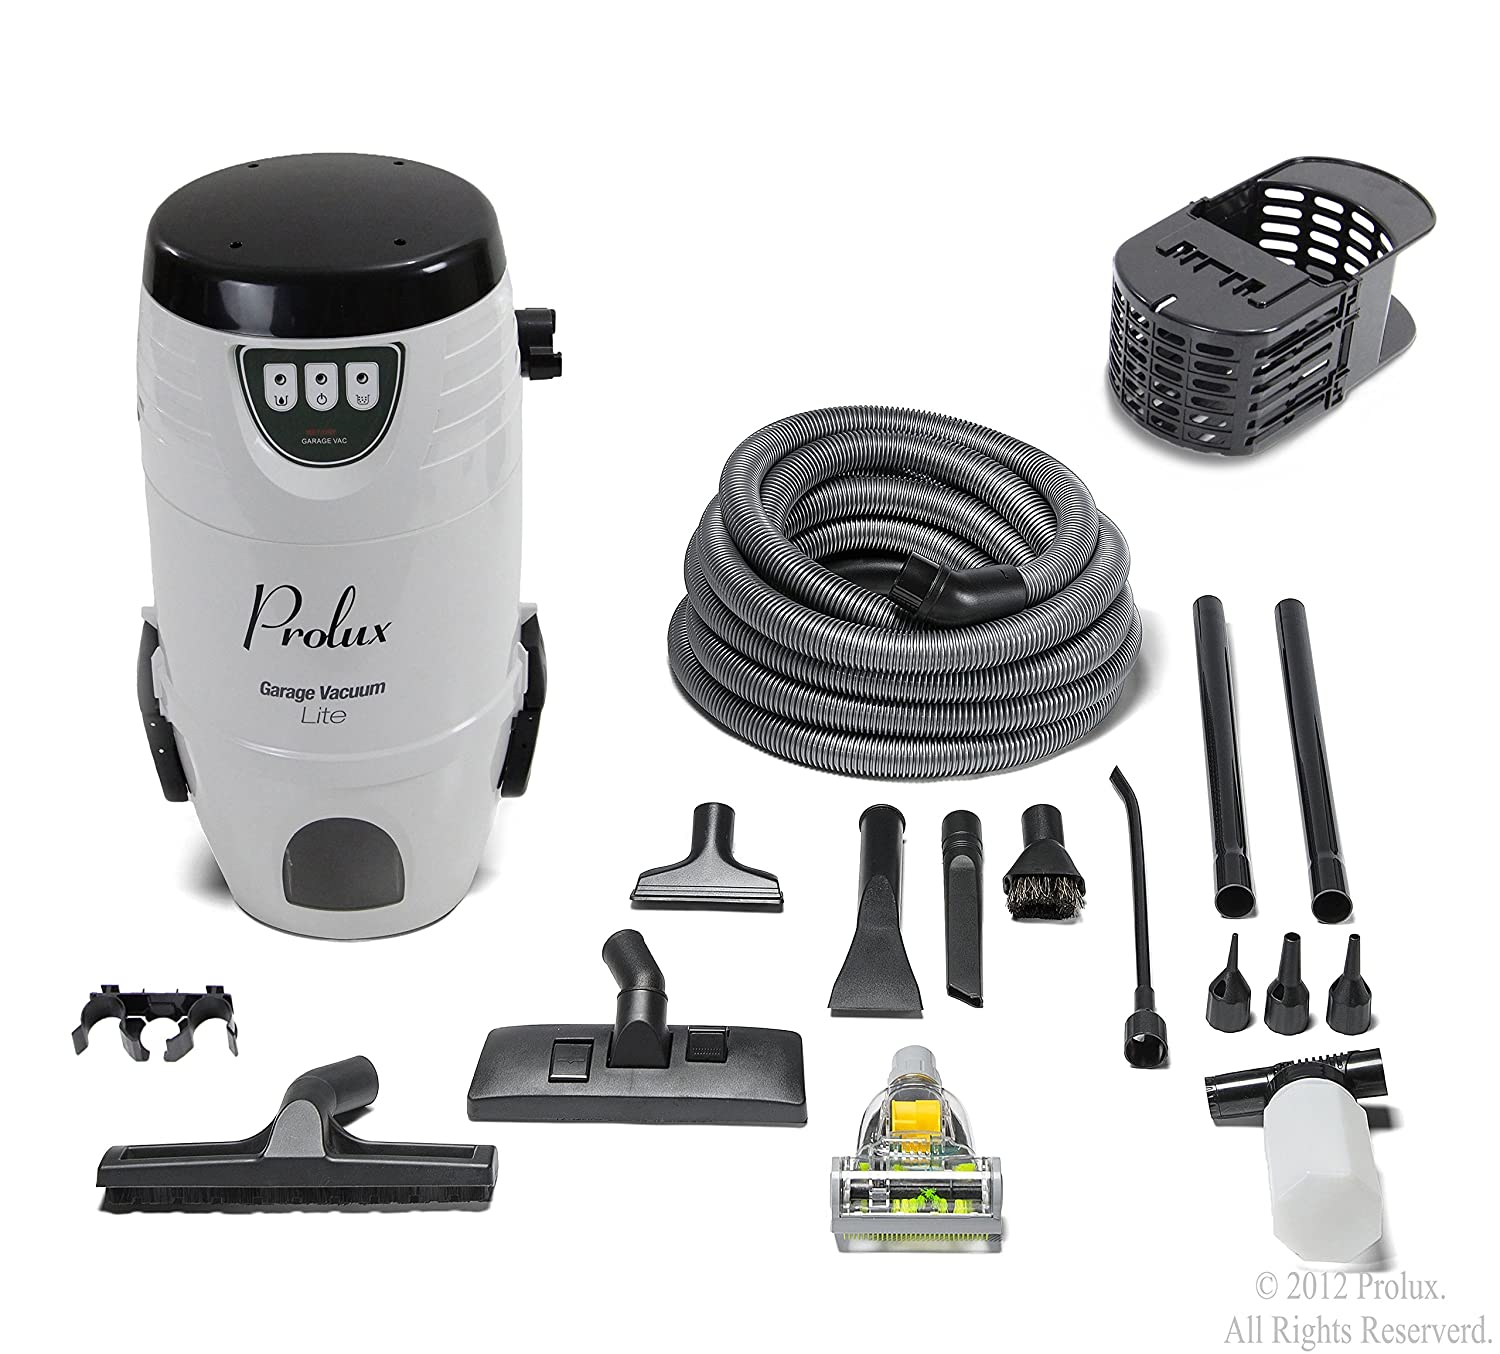 Prolux Lite Wet Dry Garage Shop Vacuum Vac Work With Lipo Charger This Balancer Can Be Used To 2 3 Shampooer Sprayer Blower Pickup